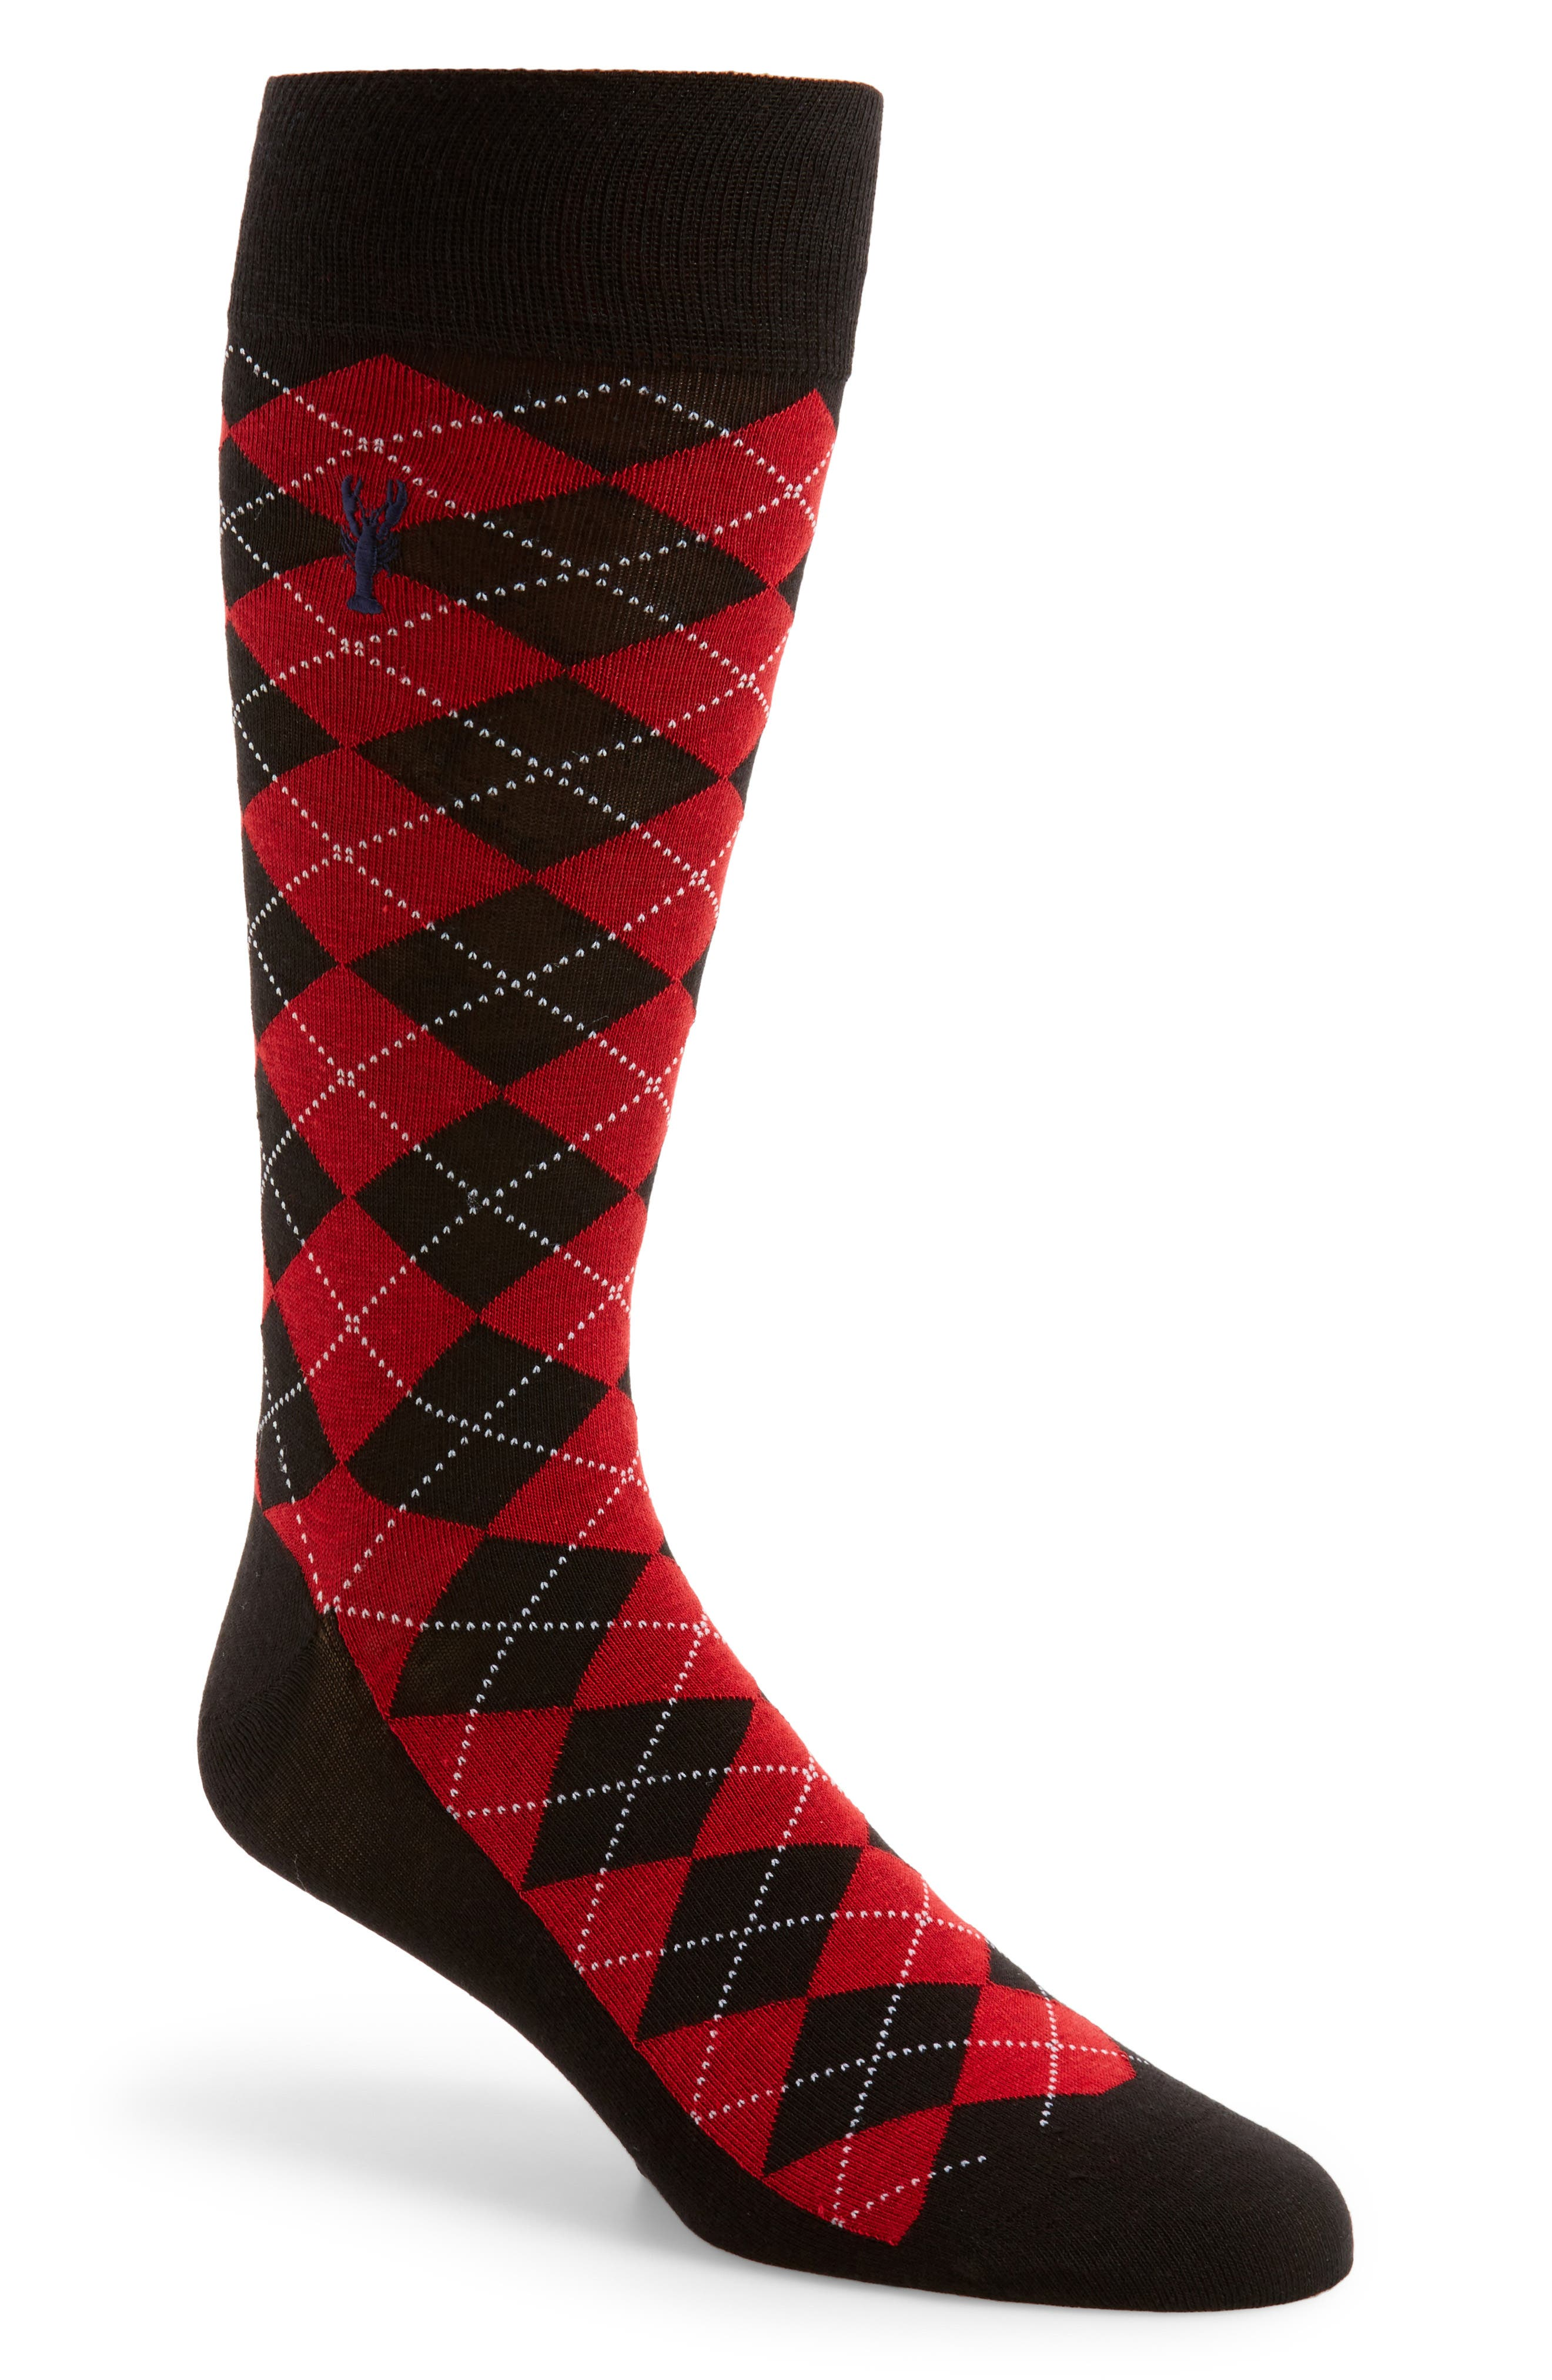 Alternate Image 1 Selected - Cole Haan Pinch Argyle Socks (3 for $30)